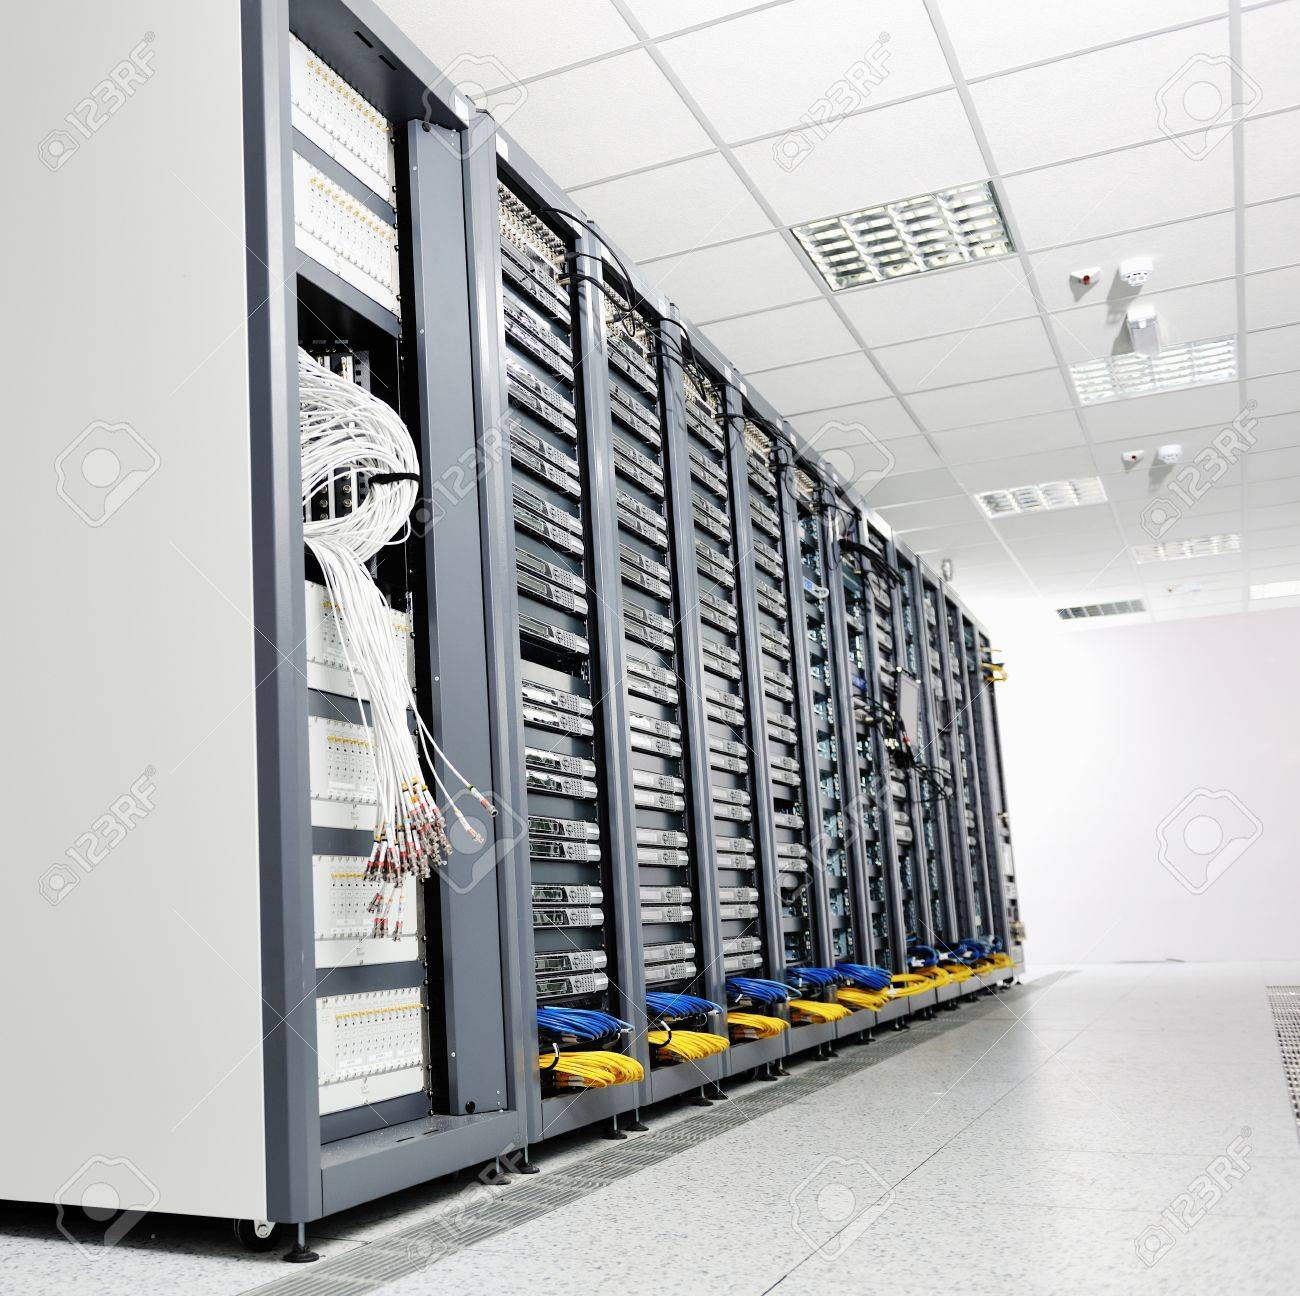 internet network server room with computers racks and digital